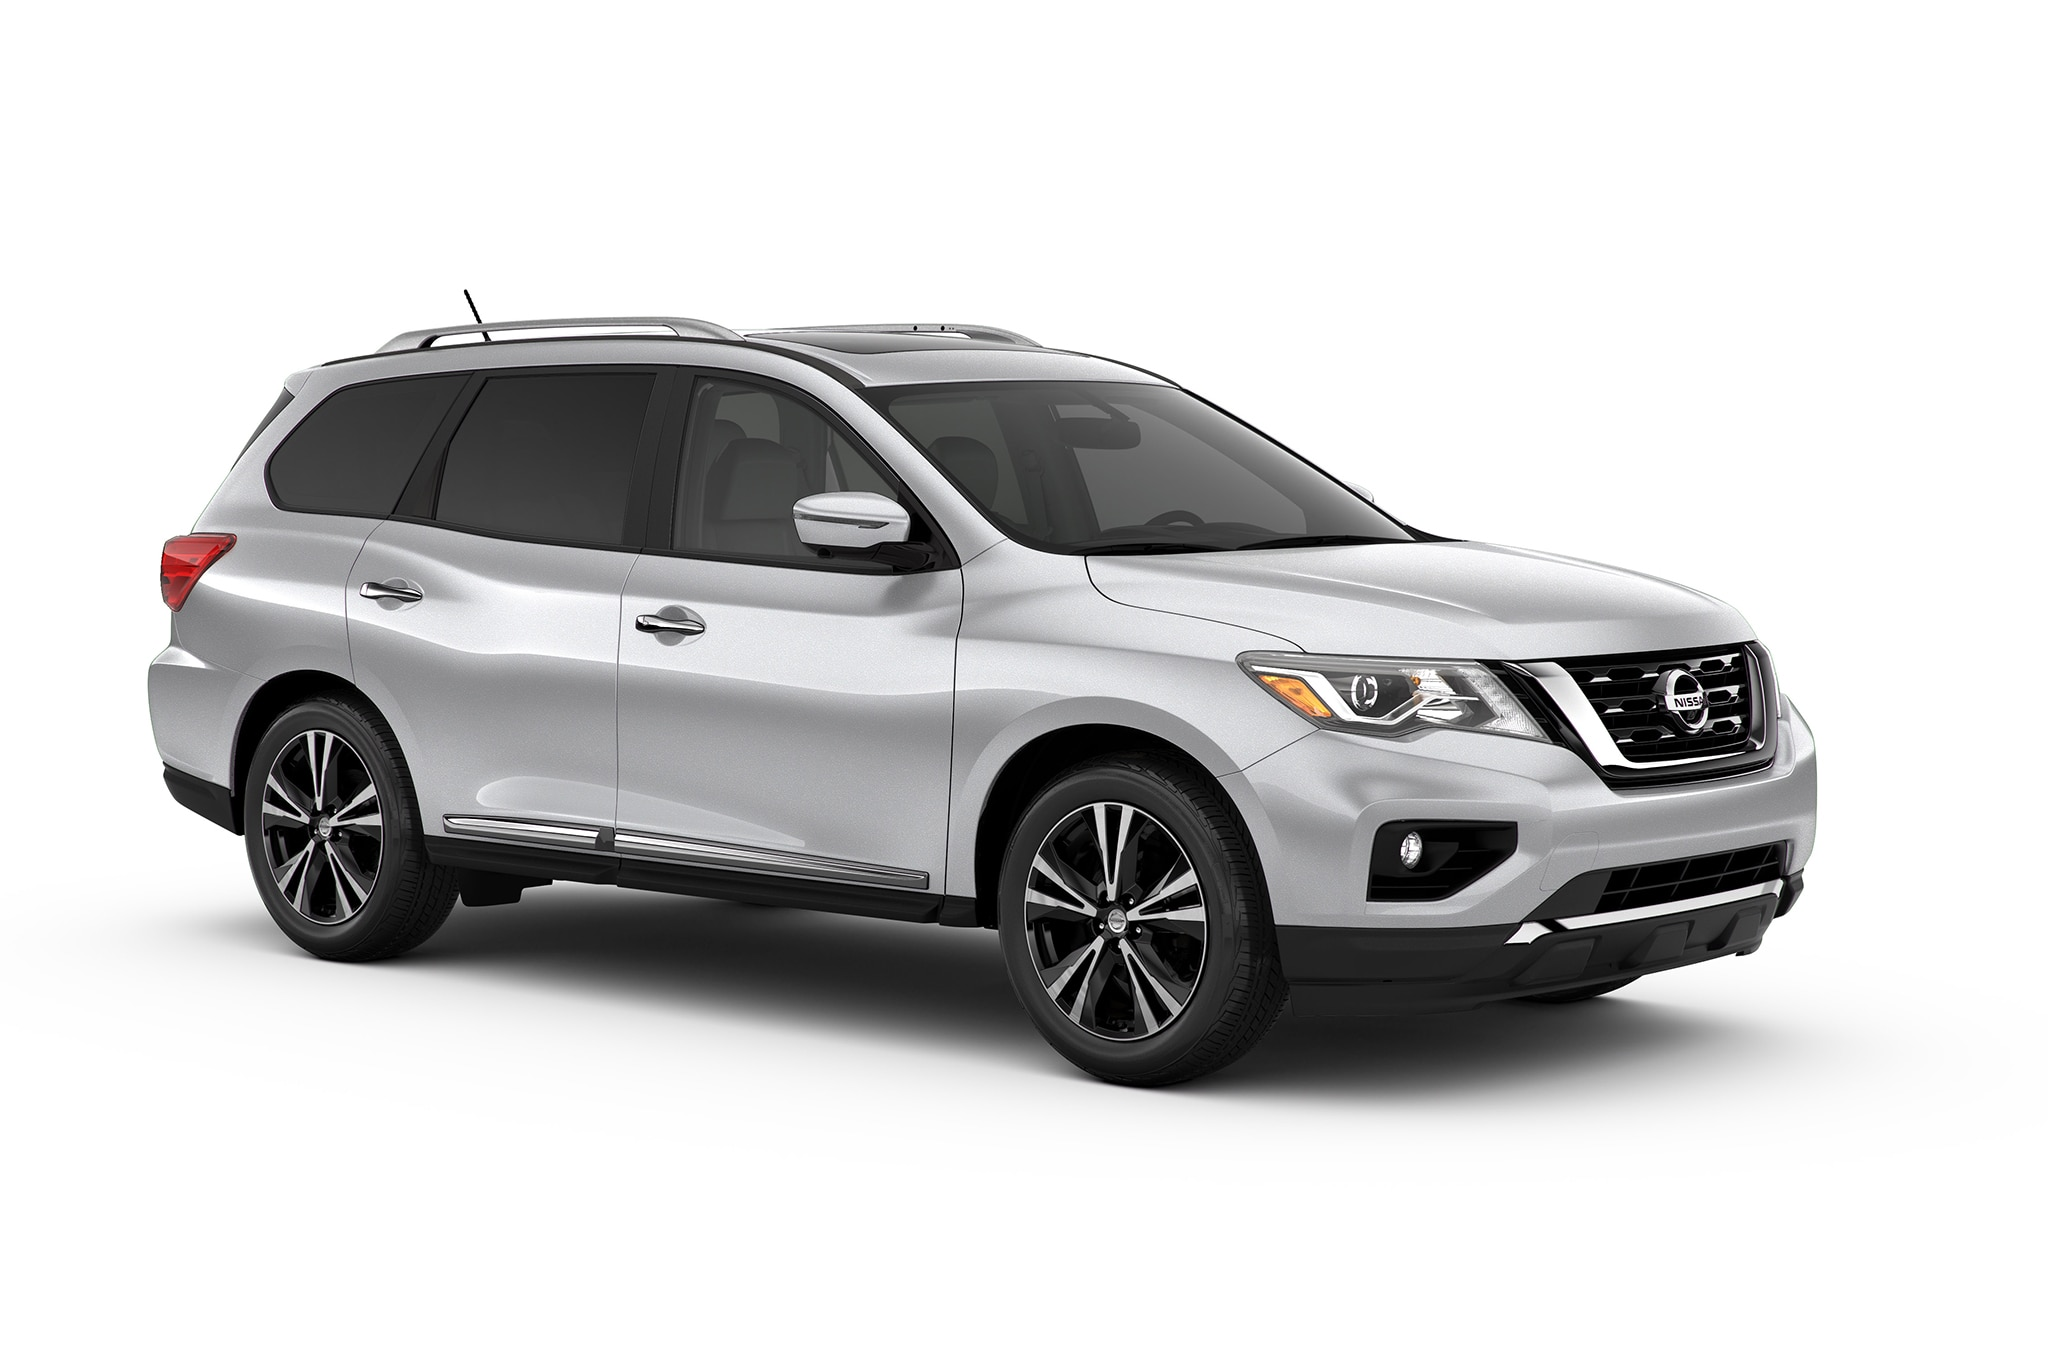 2017 Nissan Pathfinder Revealed With More Power, Torque ...